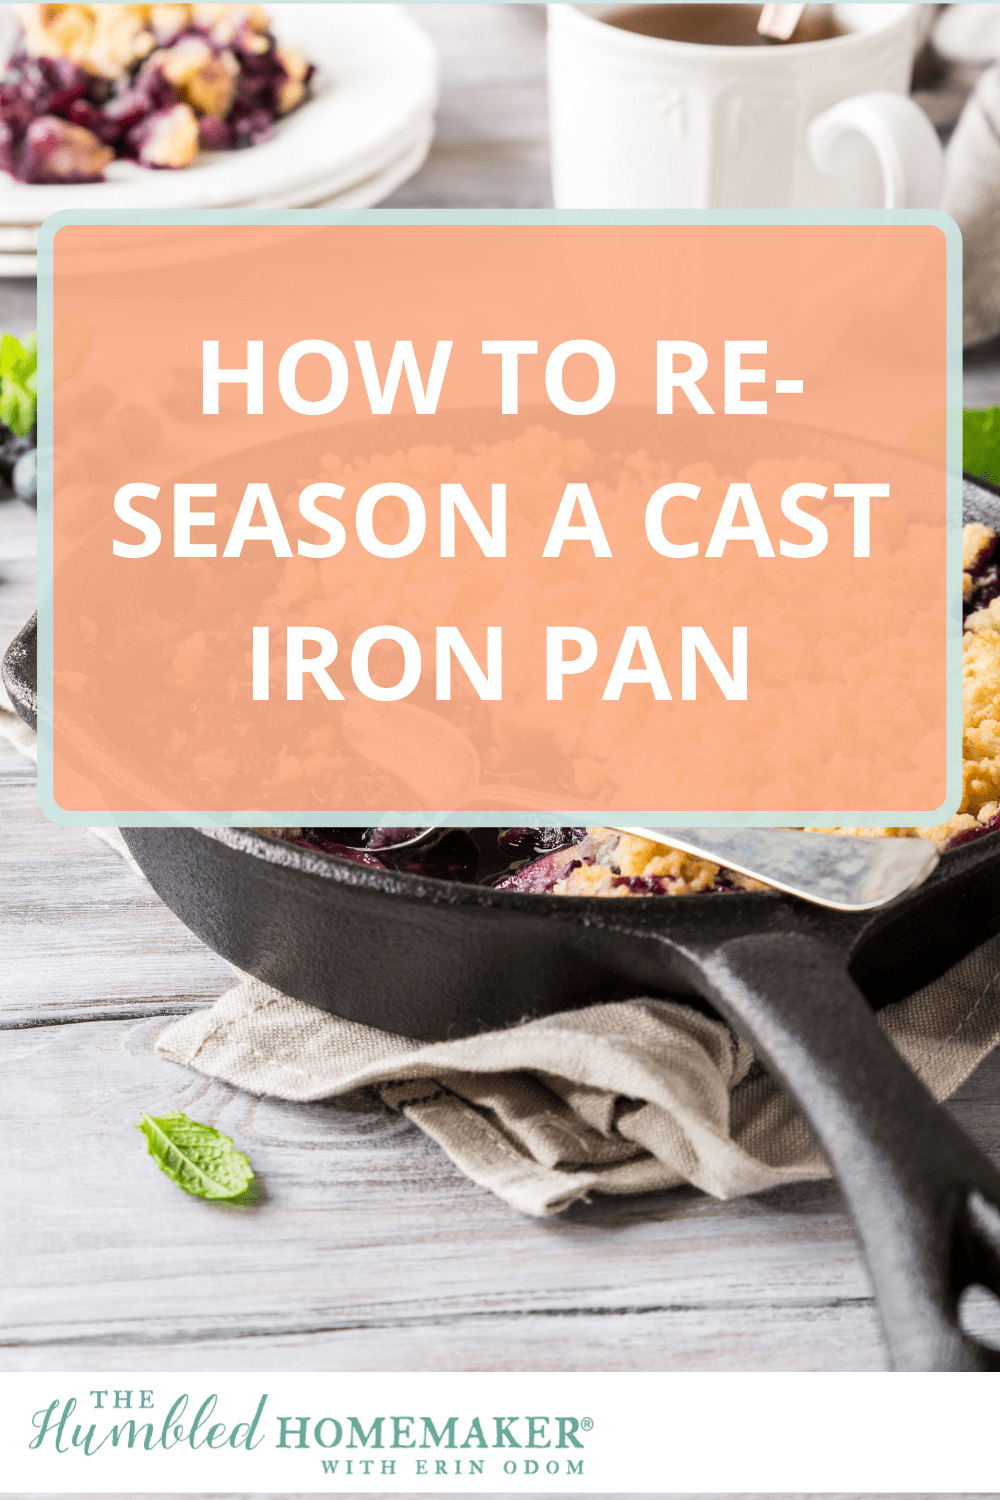 Cooking with cast iron is a safe and non-toxic alternative to using nonstick cookware. Here's a step-by-step tutorial for restoring and re-seasoning a rusty cast iron skillet or pan!